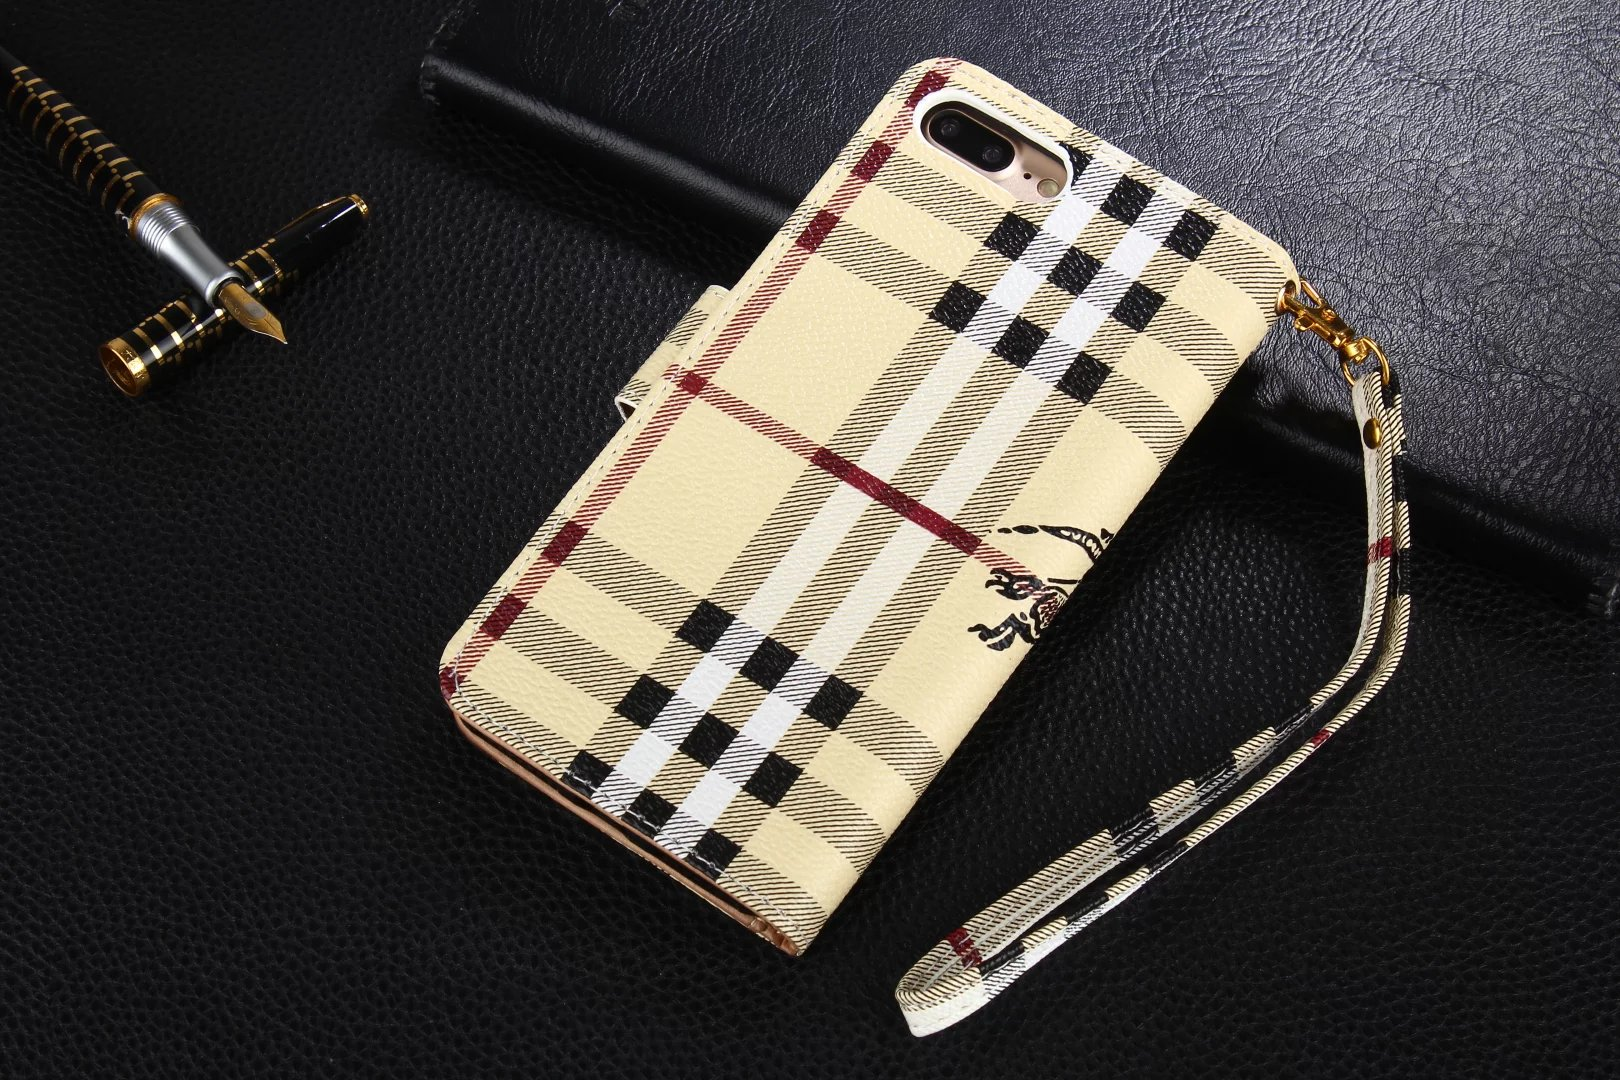 cool iphone 8 Plus s cases make my own iphone 8 Plus case Burberry iphone 8 Plus case good iPhone 8 Plus cases make your own custom iphone case top cell phone case manufacturers ipod 6 case designer customised phone covers mobile phone covers